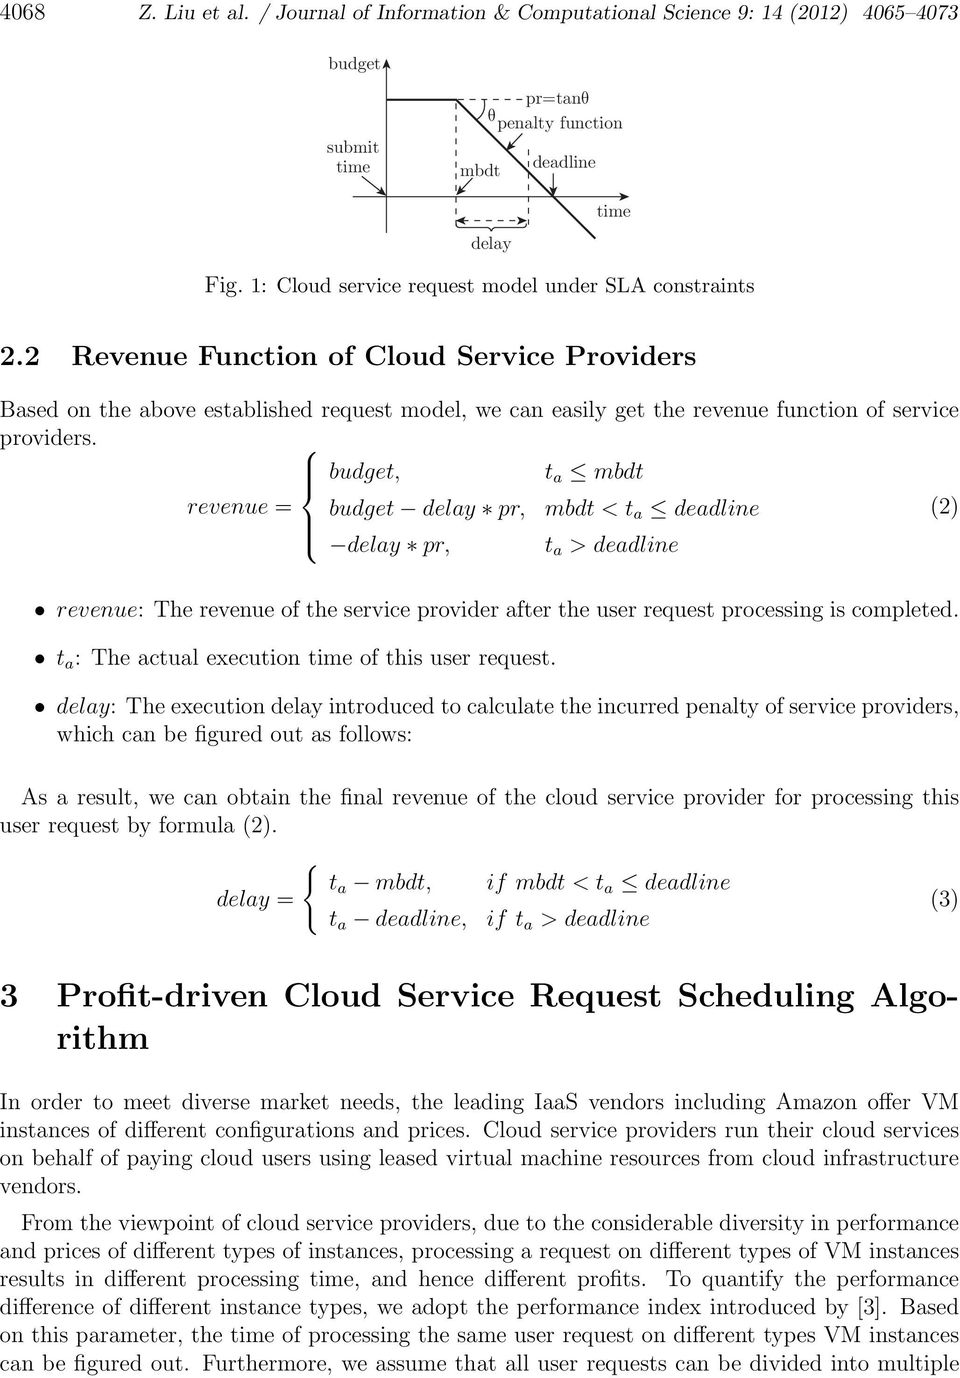 2 Revenue Function of Cloud Service Providers Based on the above established request model, we can easily get the revenue function of service providers.